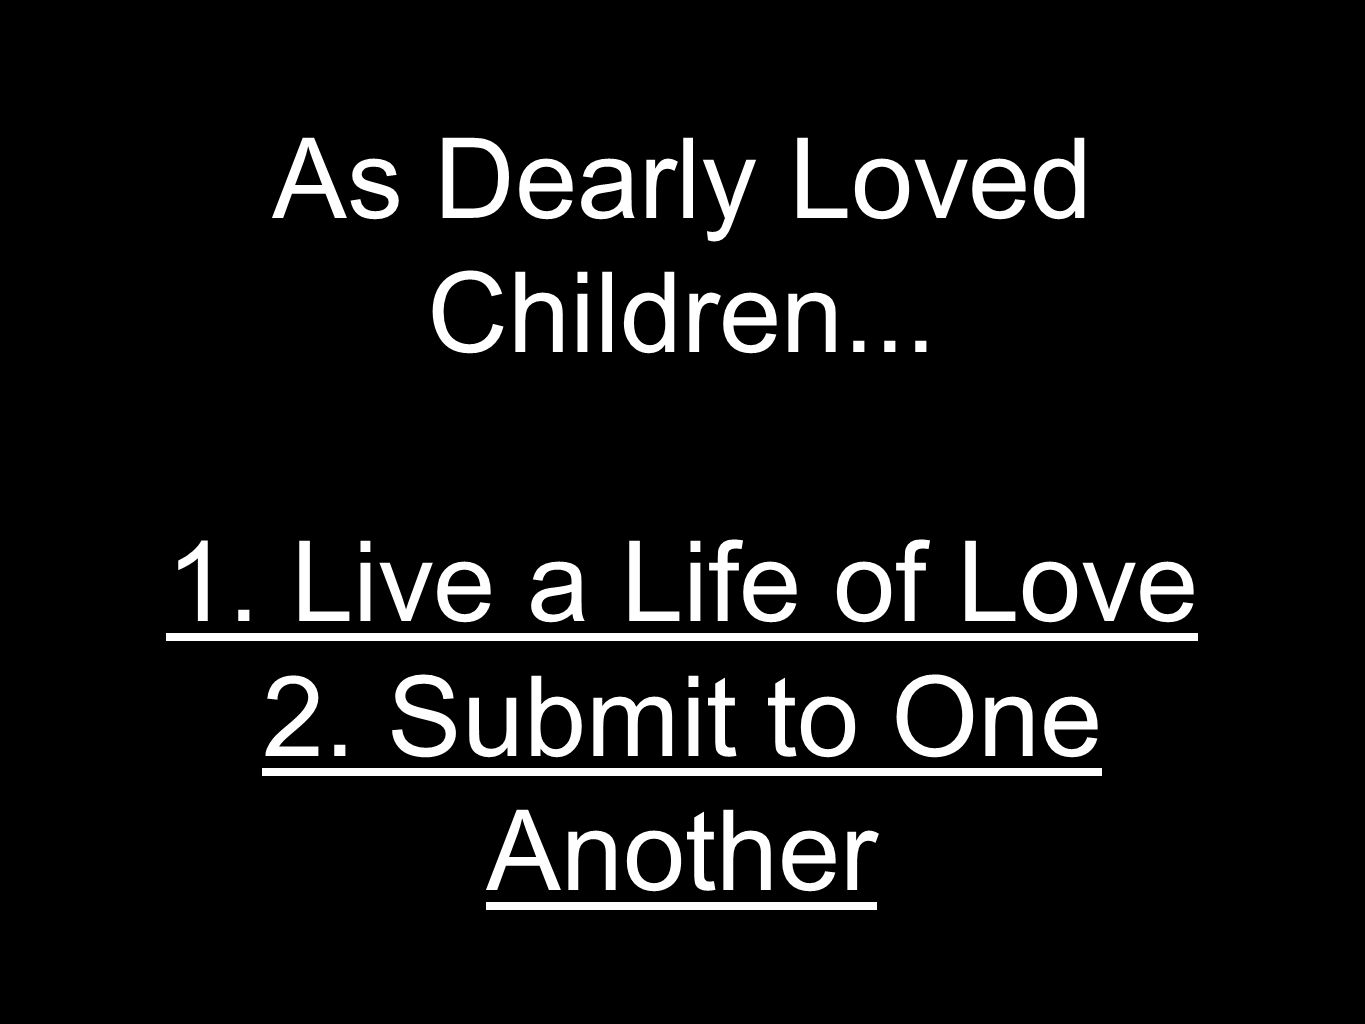 As Dearly Loved Children Live a Life of Love 2. Submit to One Another